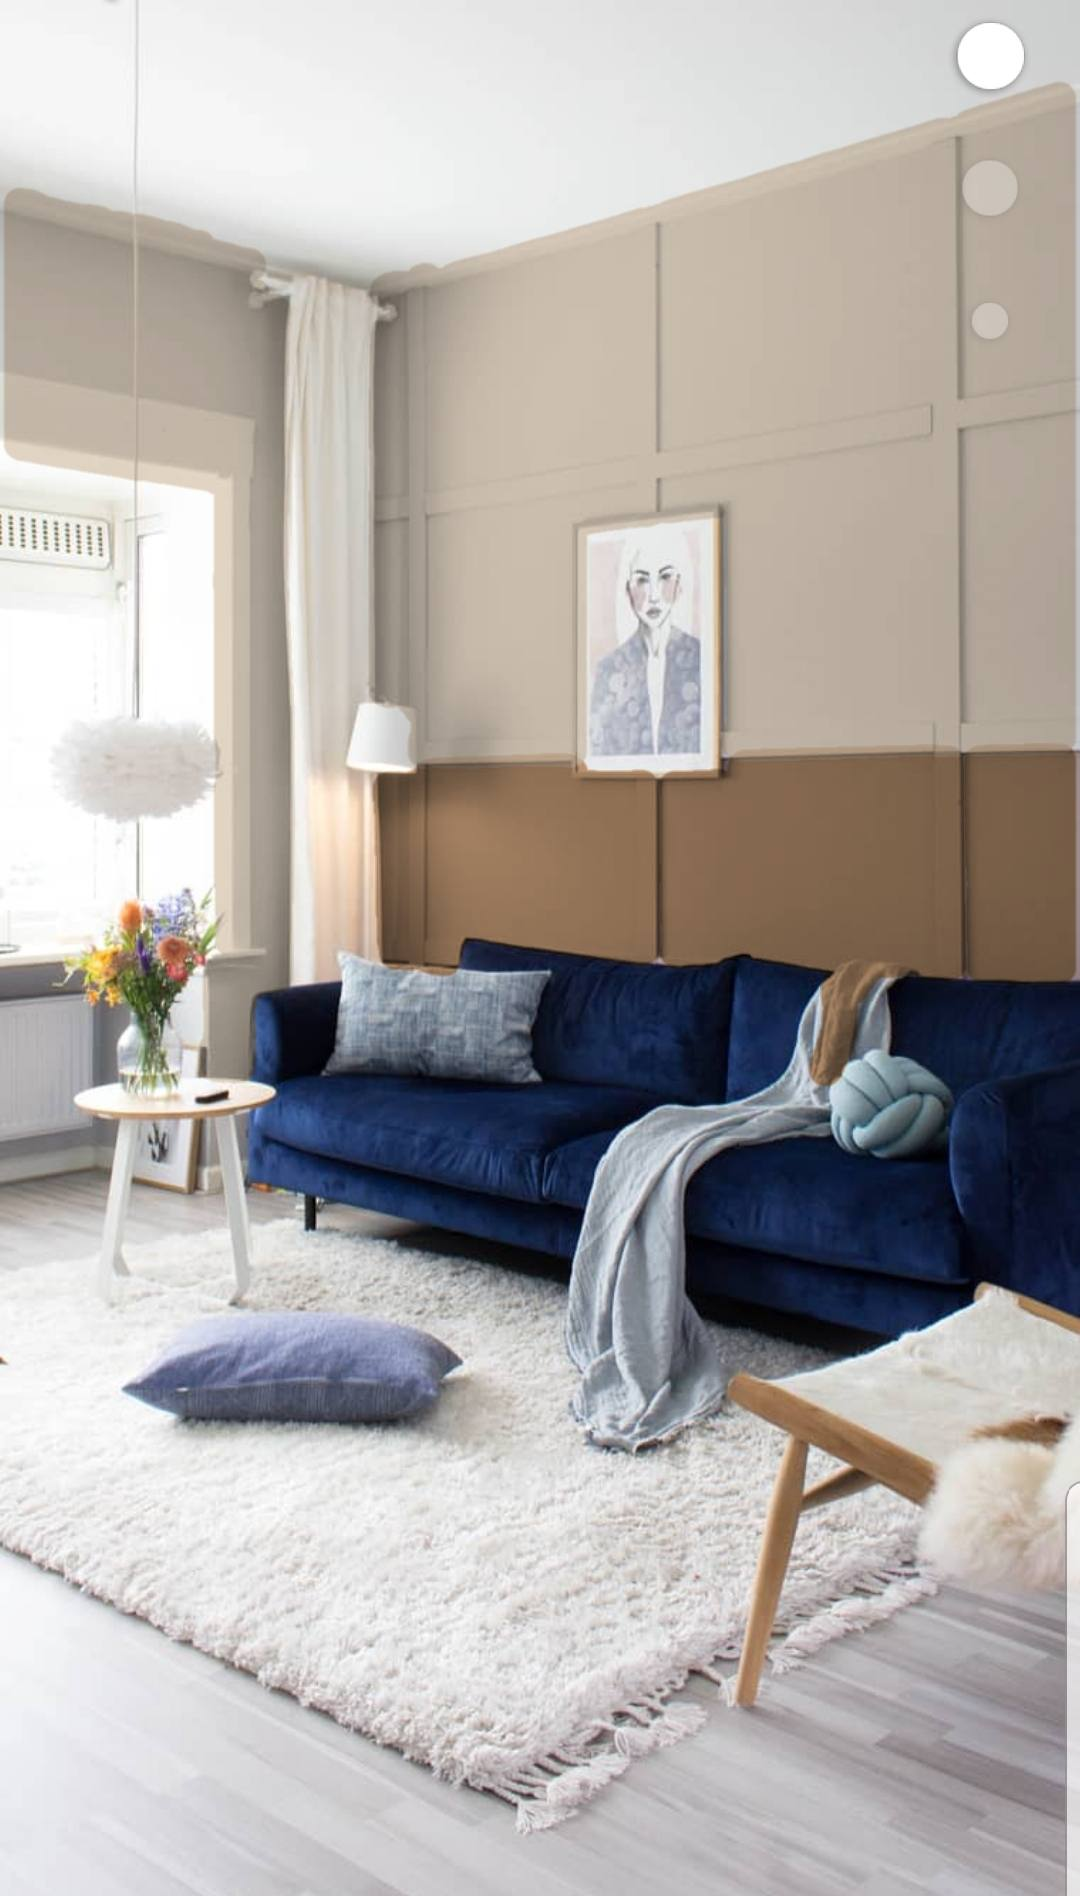 Flexa Visualiser Donkerblauw Met Spiced Honey Juudithhome Interieur